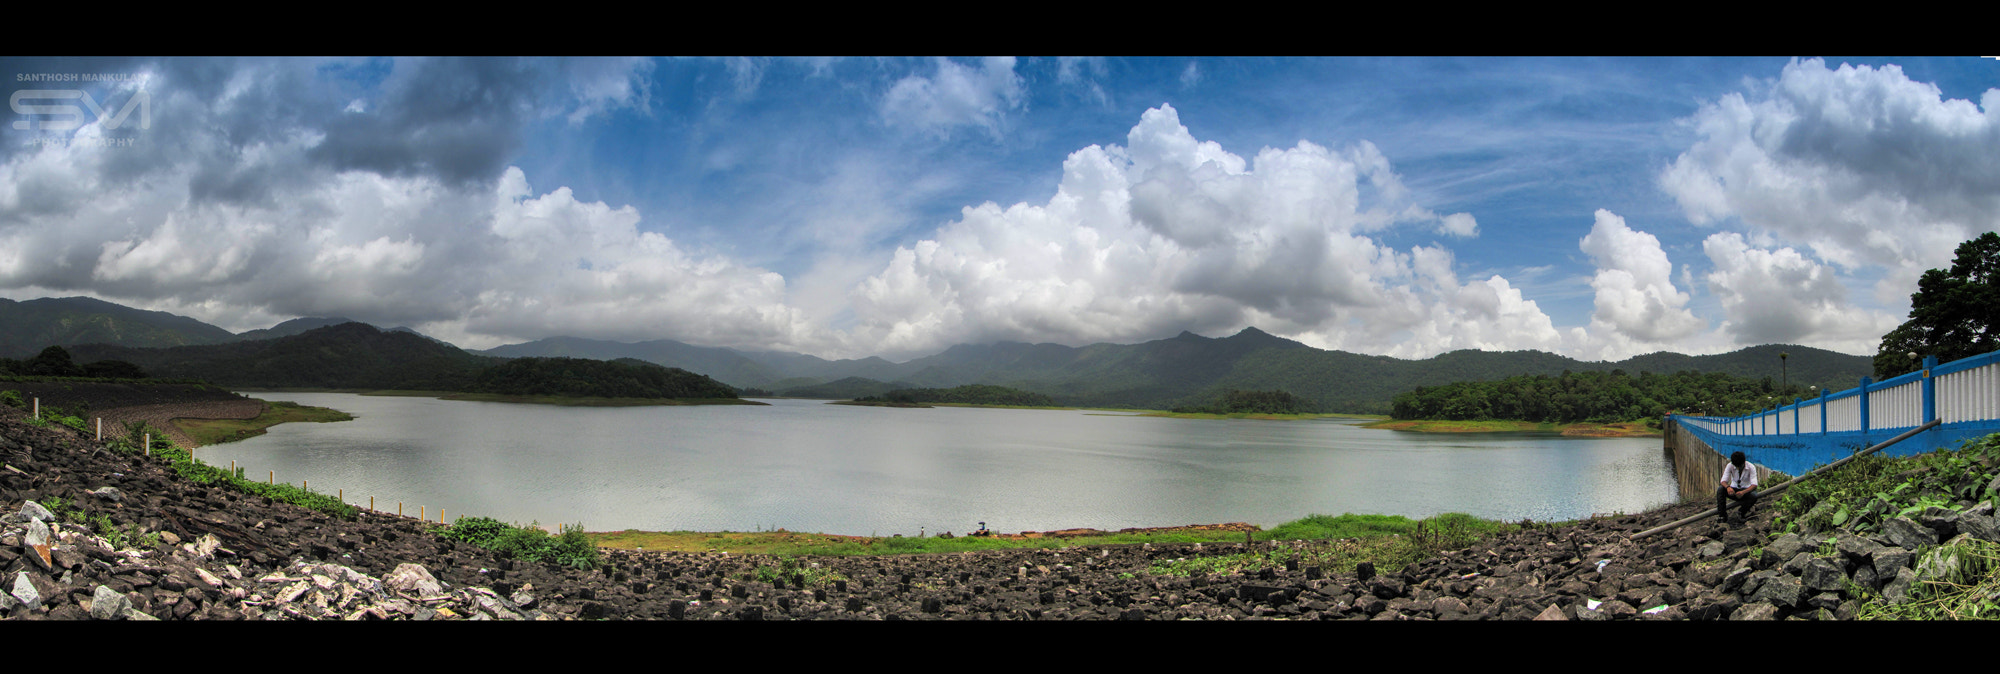 Photograph Chimmony Dam..! by Santhosh Mankulam on 500px